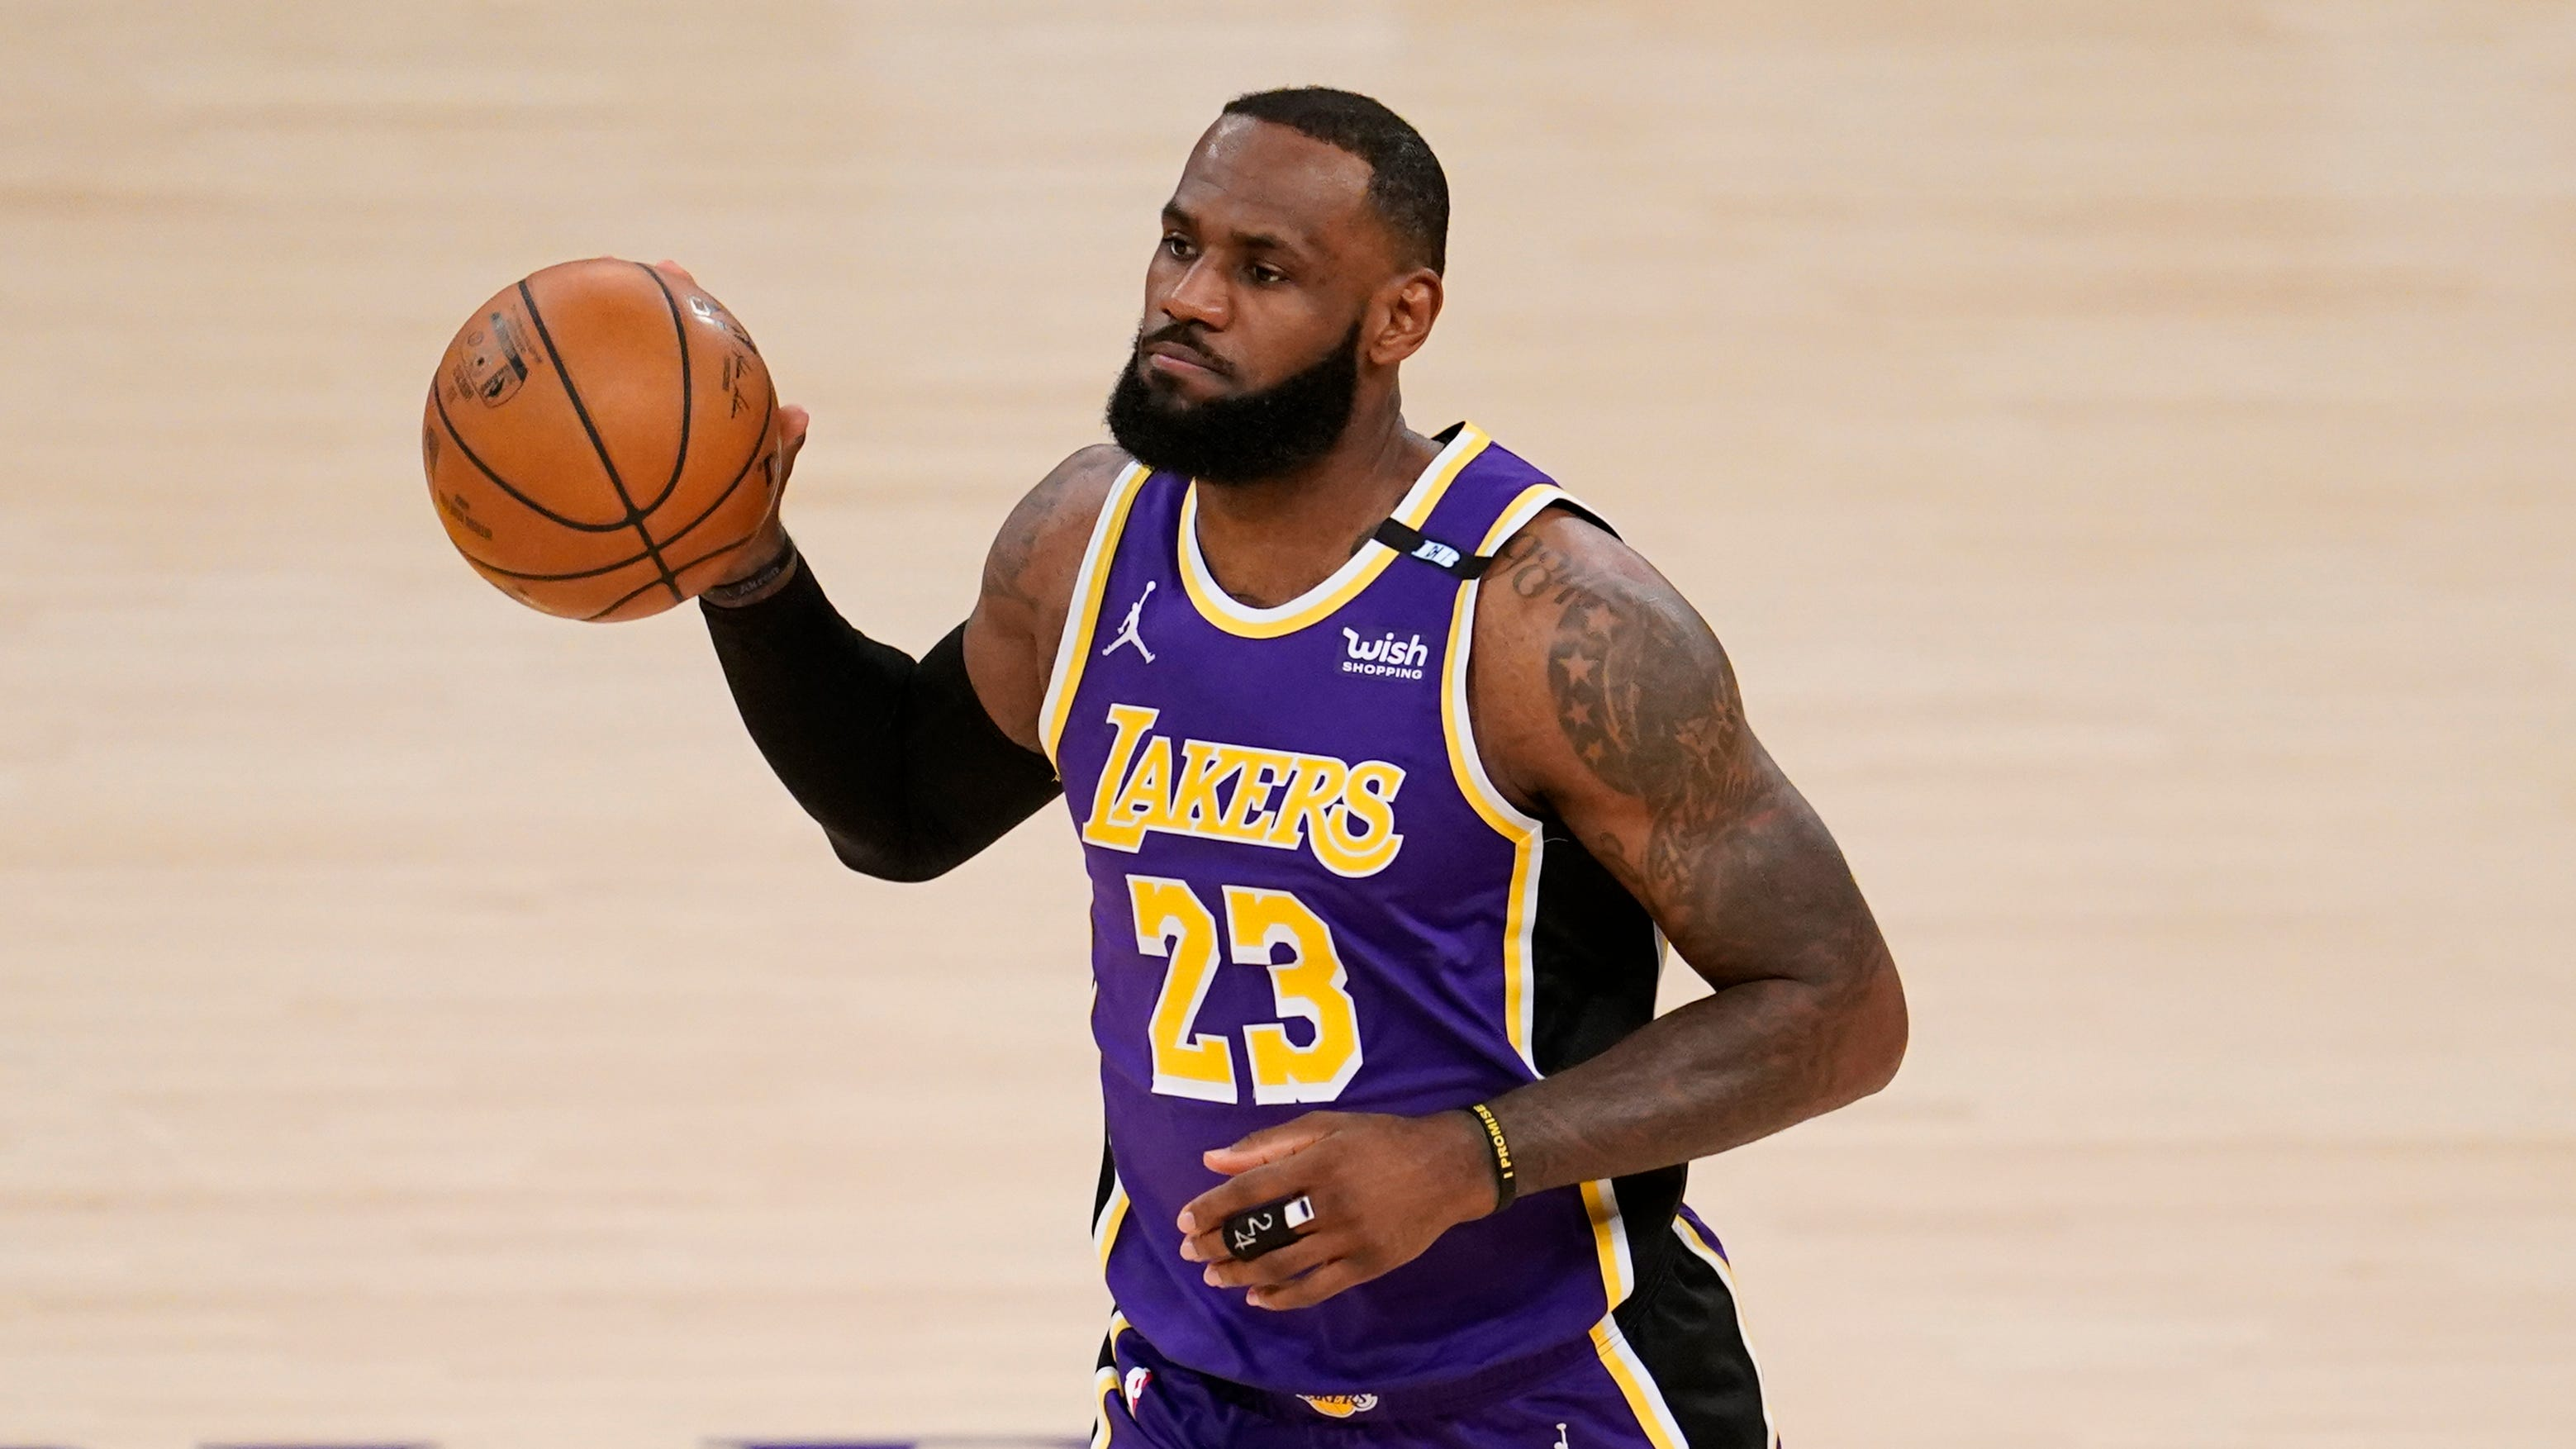 Lakers' LeBron James declines to say whether he has or plans to take COVID-19 vaccine